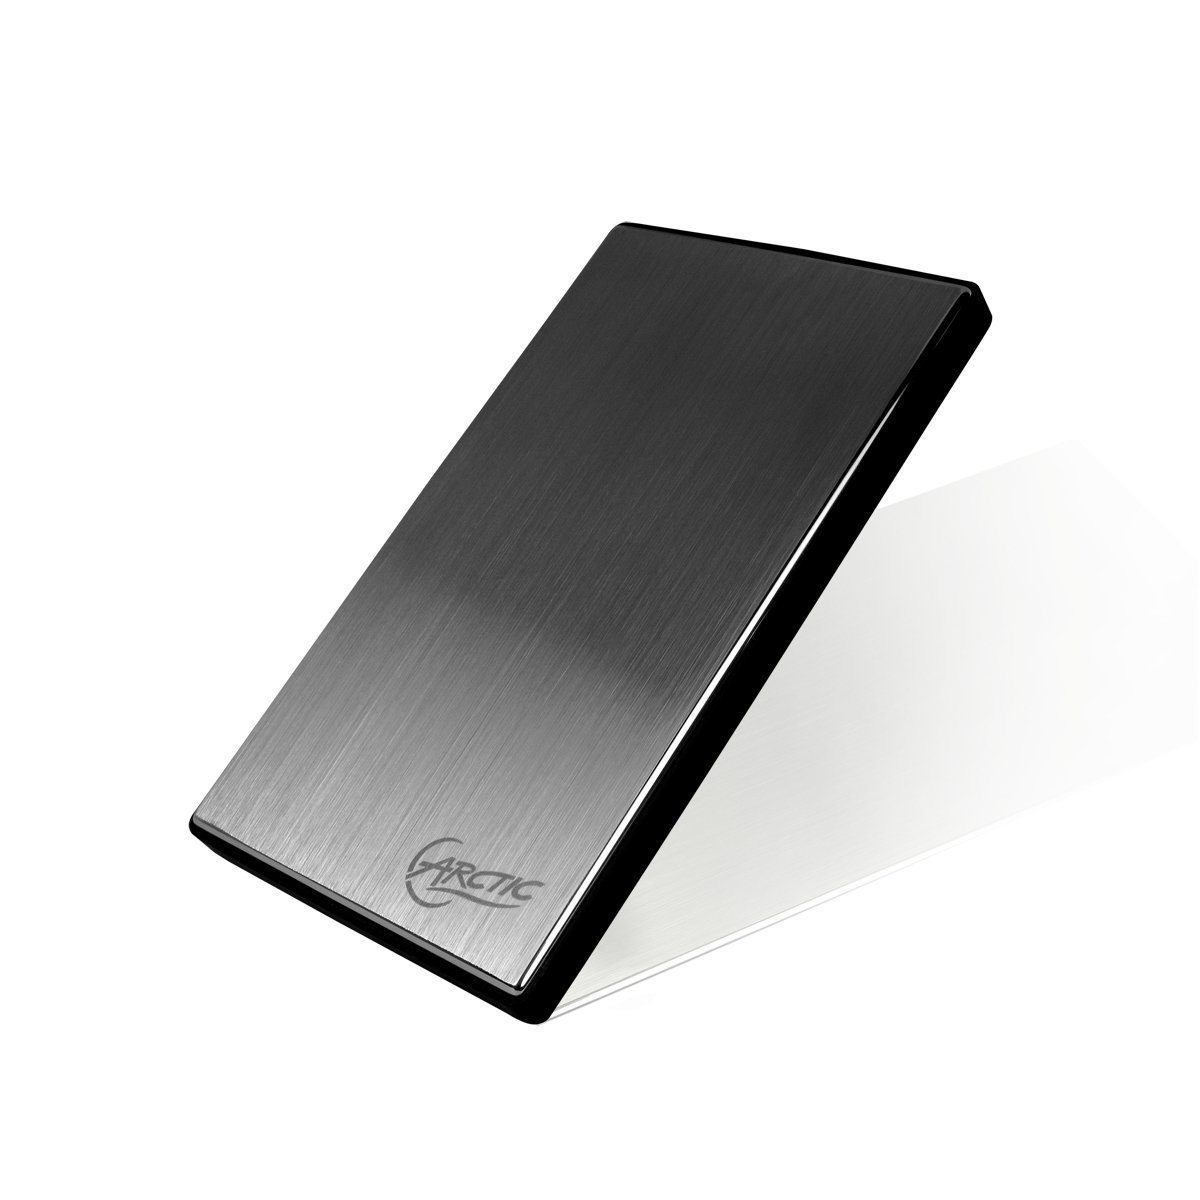 "2.5"" stainless steel HDD Enclosure SATA USB 3.0"